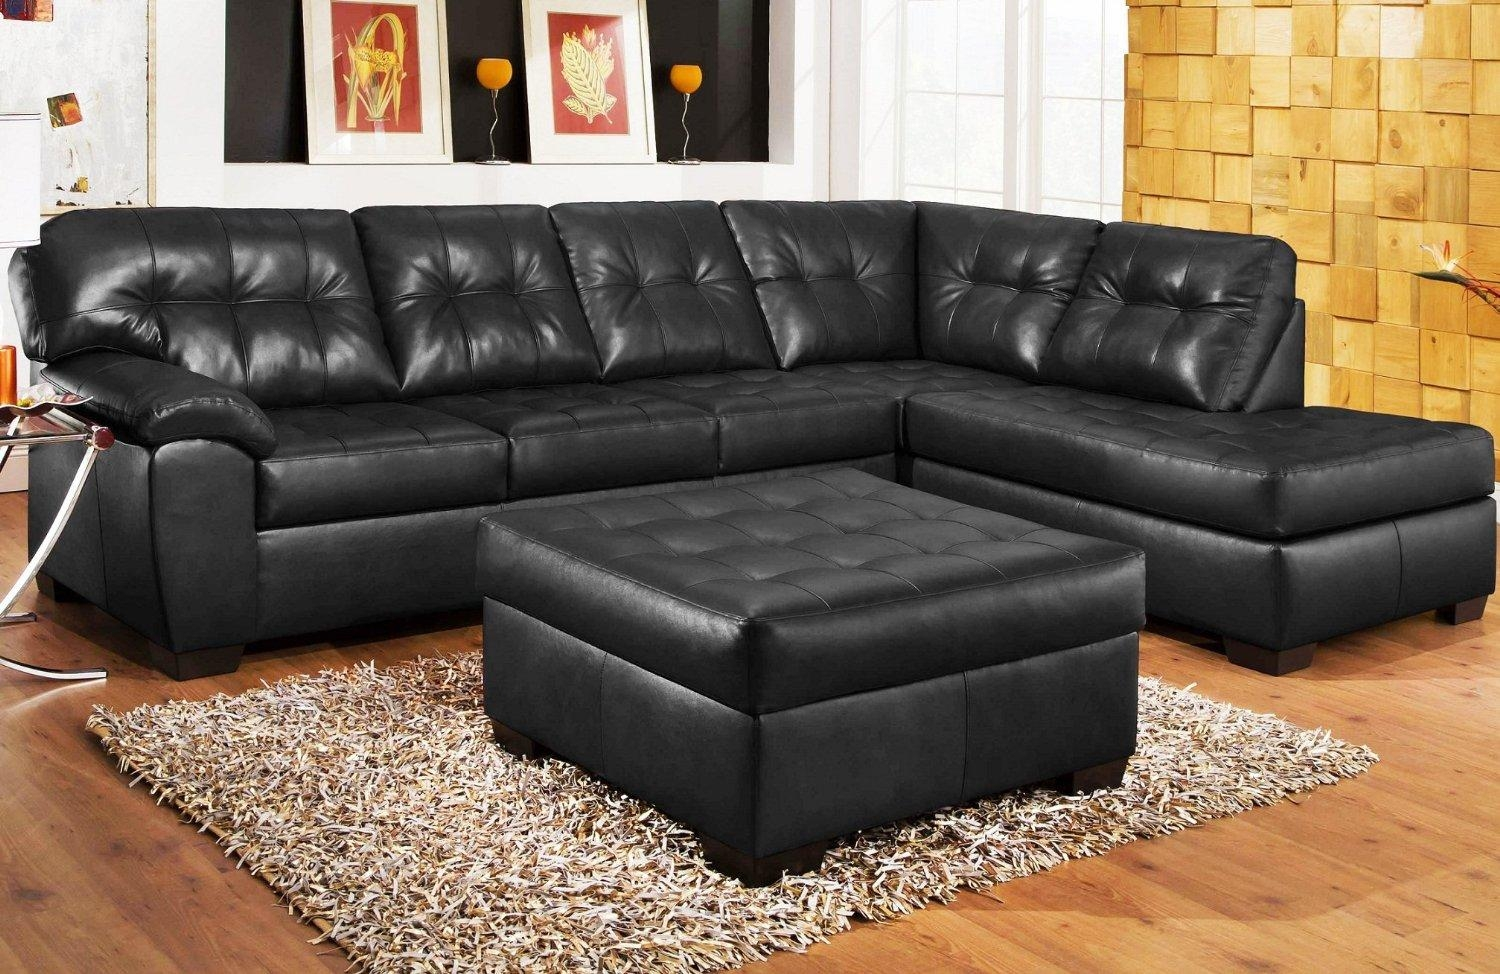 Interior: Stunning Micro Cheap Leather Sectionals For Living Room For Cheap Black Sectionals (Image 6 of 15)